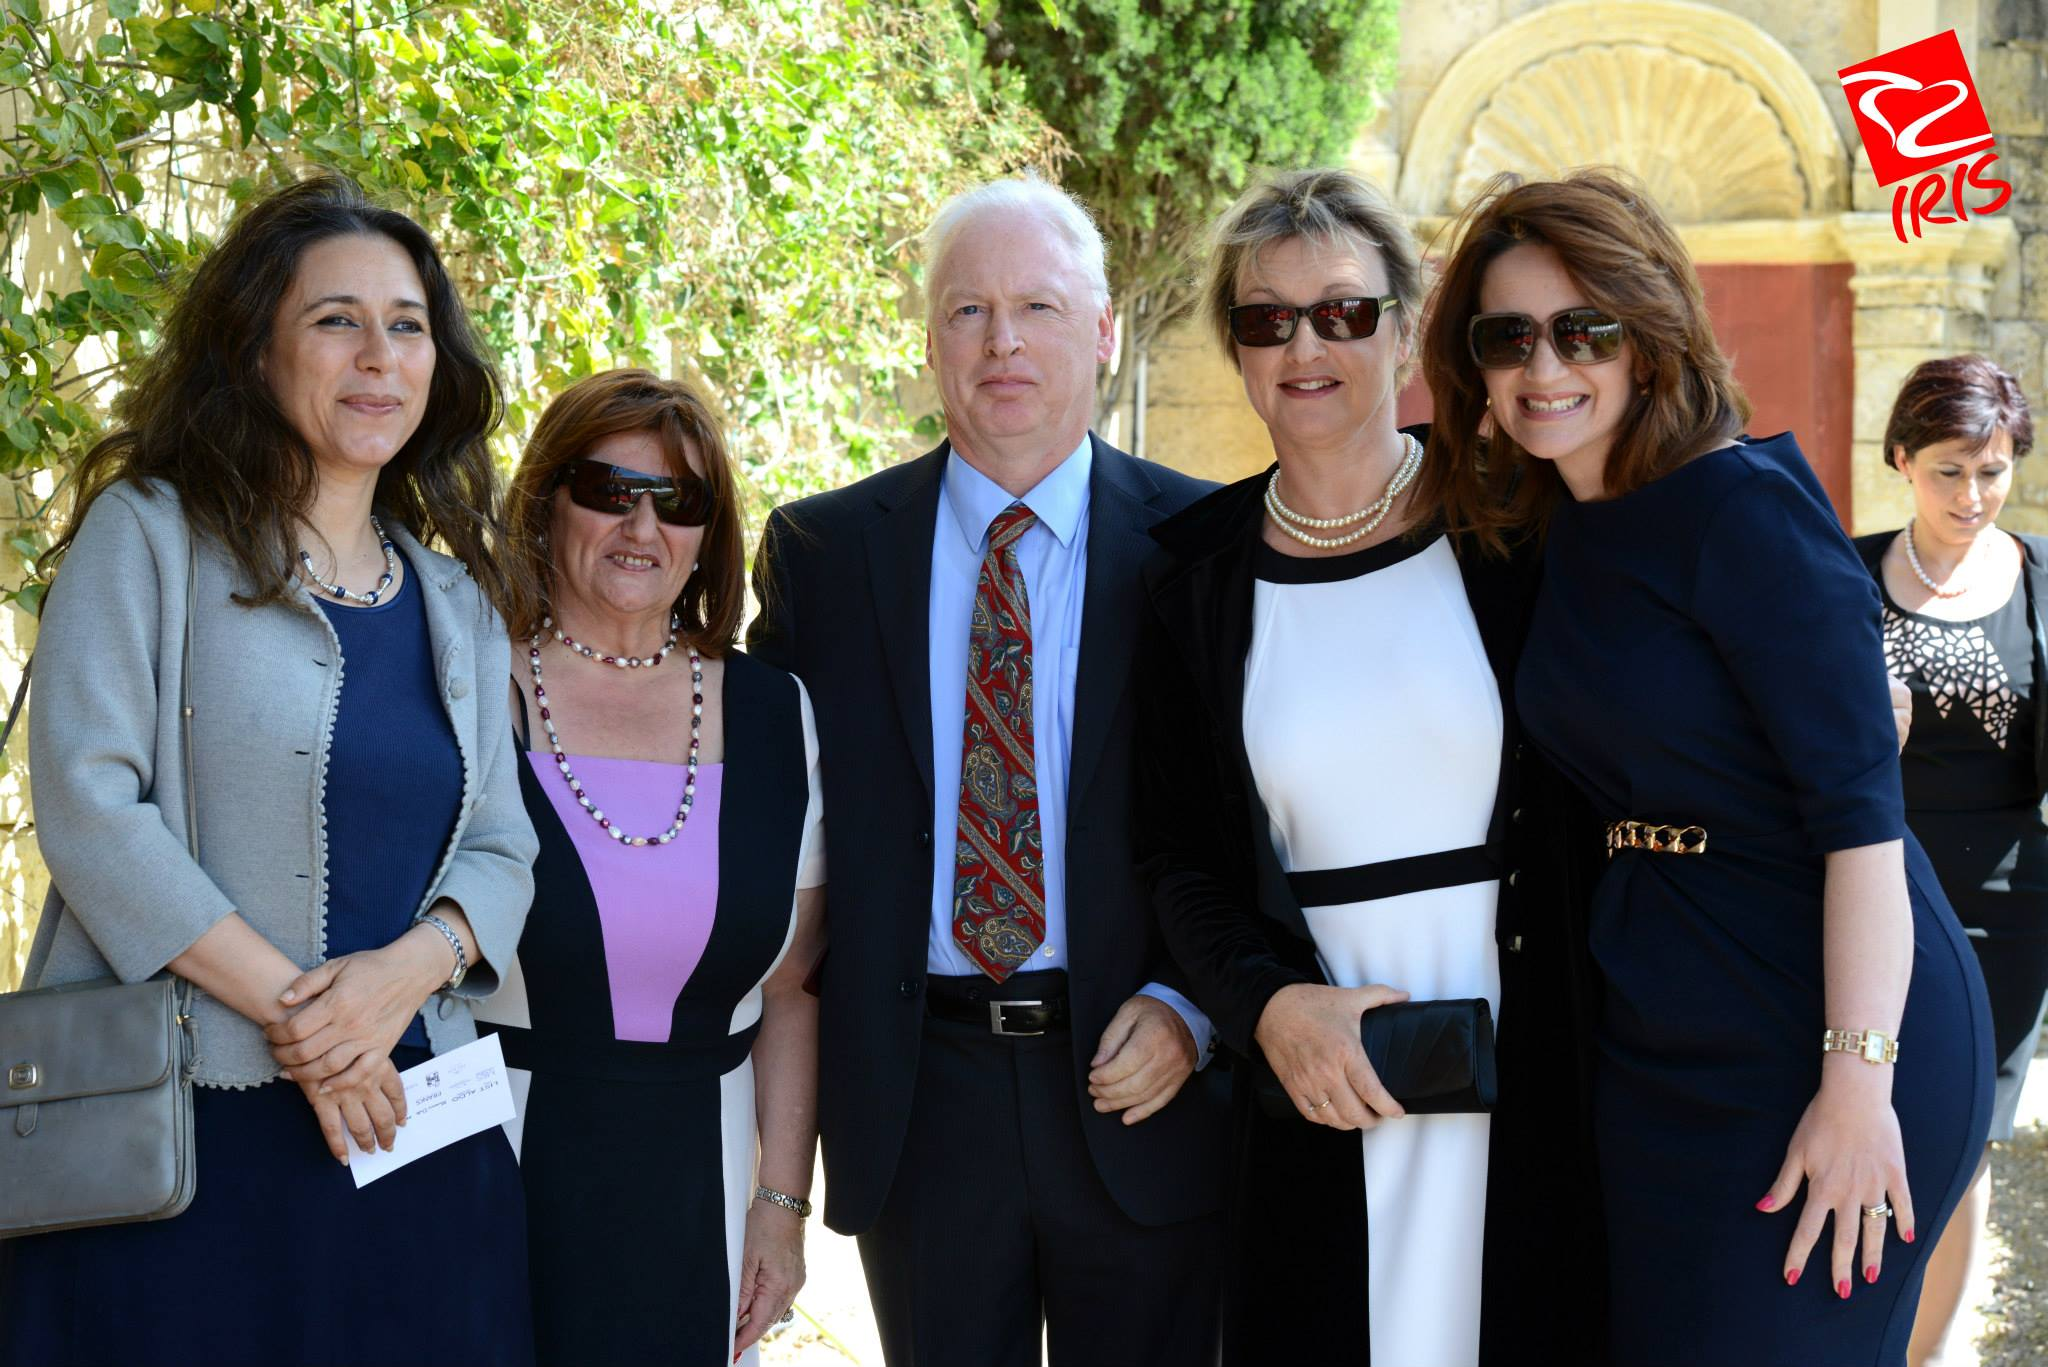 Mrs Muscat, far right, with guests